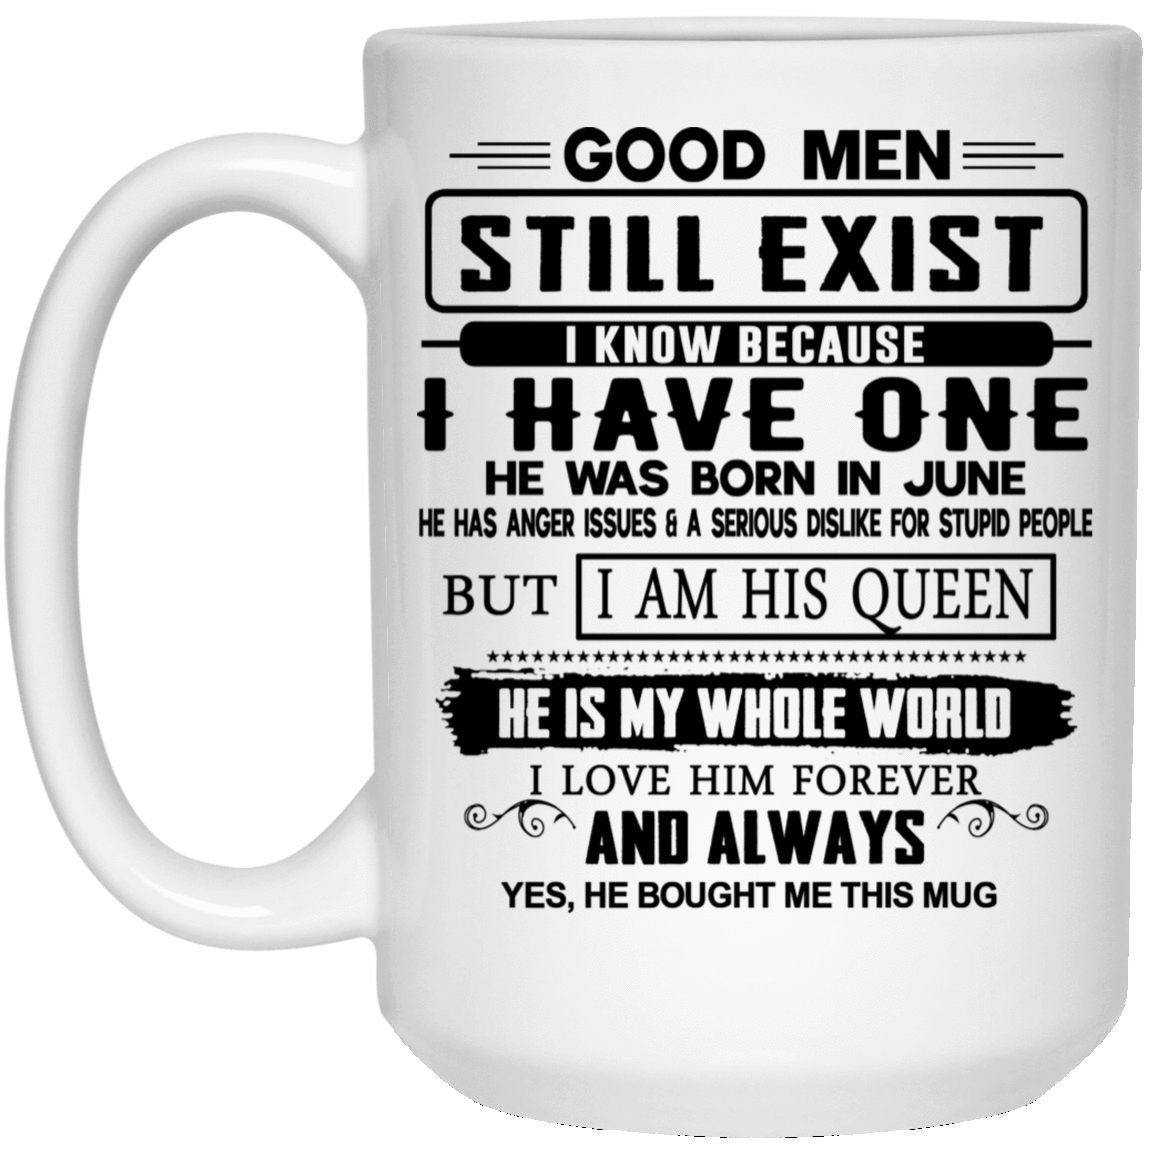 Good Men Still Exist I Have One He Was Born In June Mug 1032-9816-76399507-47456 - Tee Ript